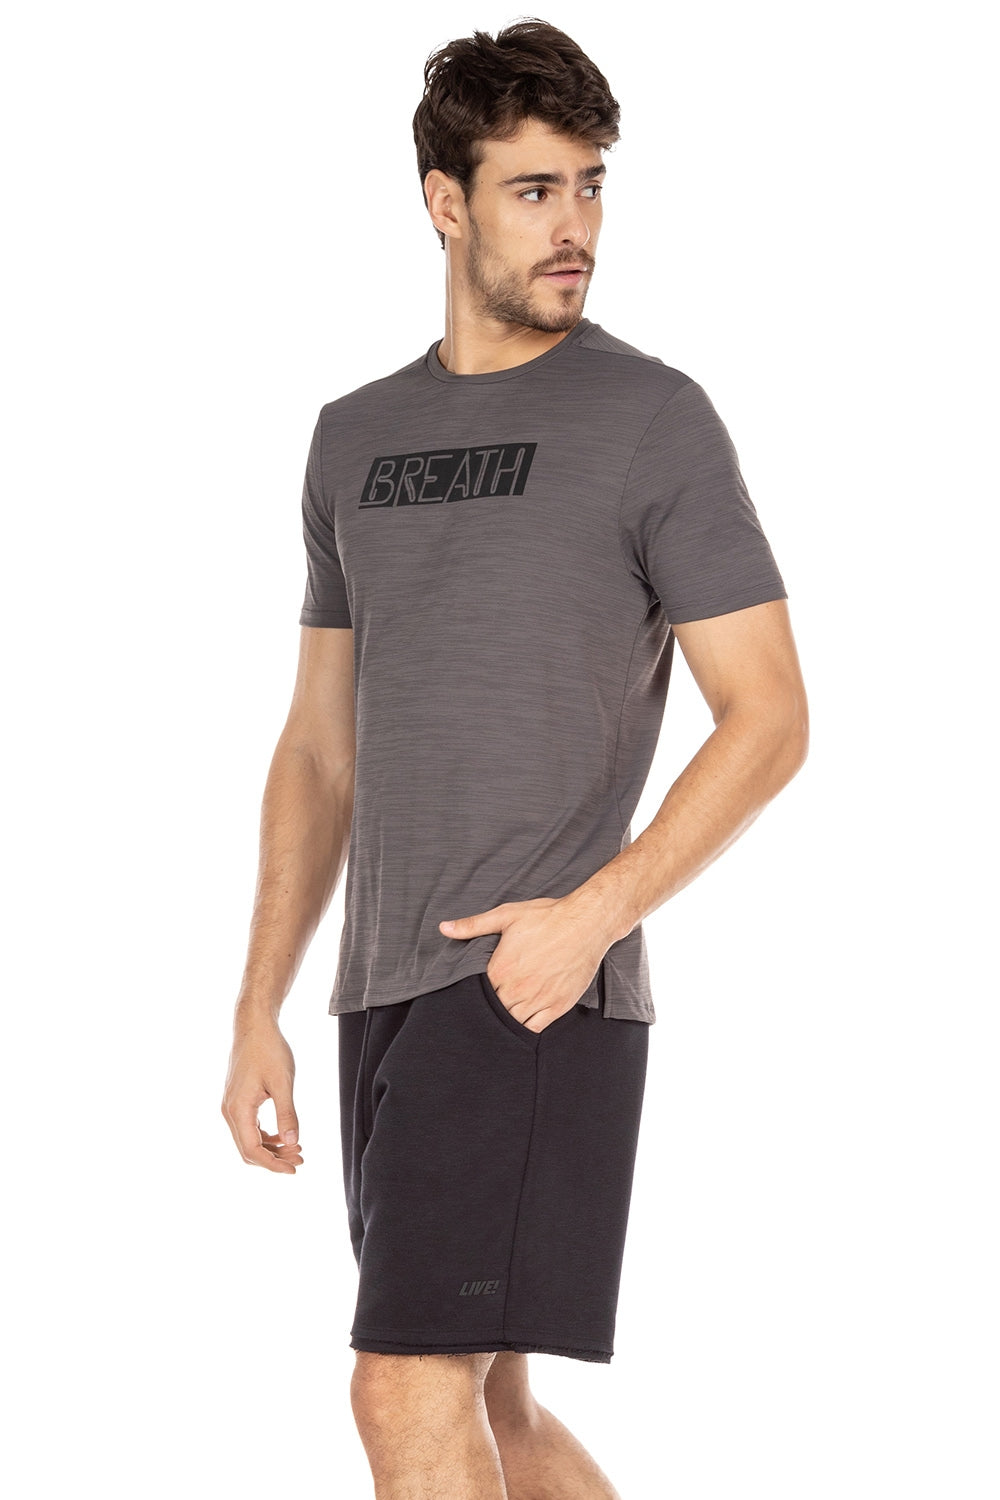 Breath T-shirt